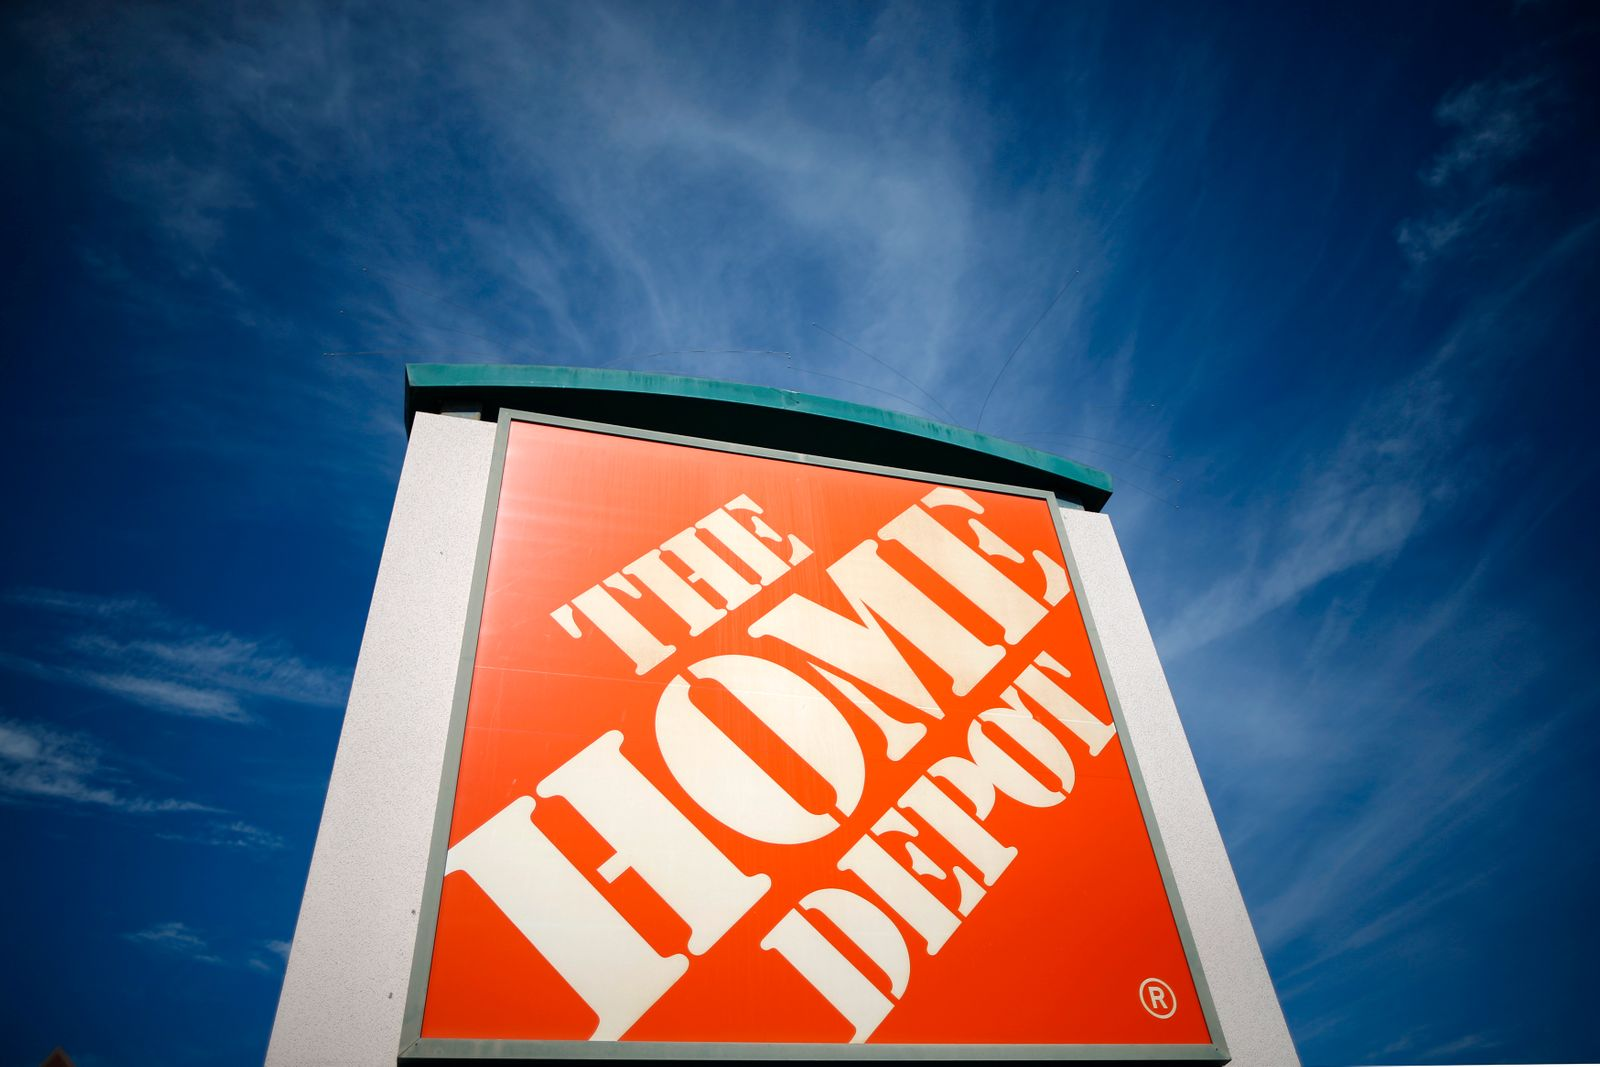 USA-HOMEDEPOT/